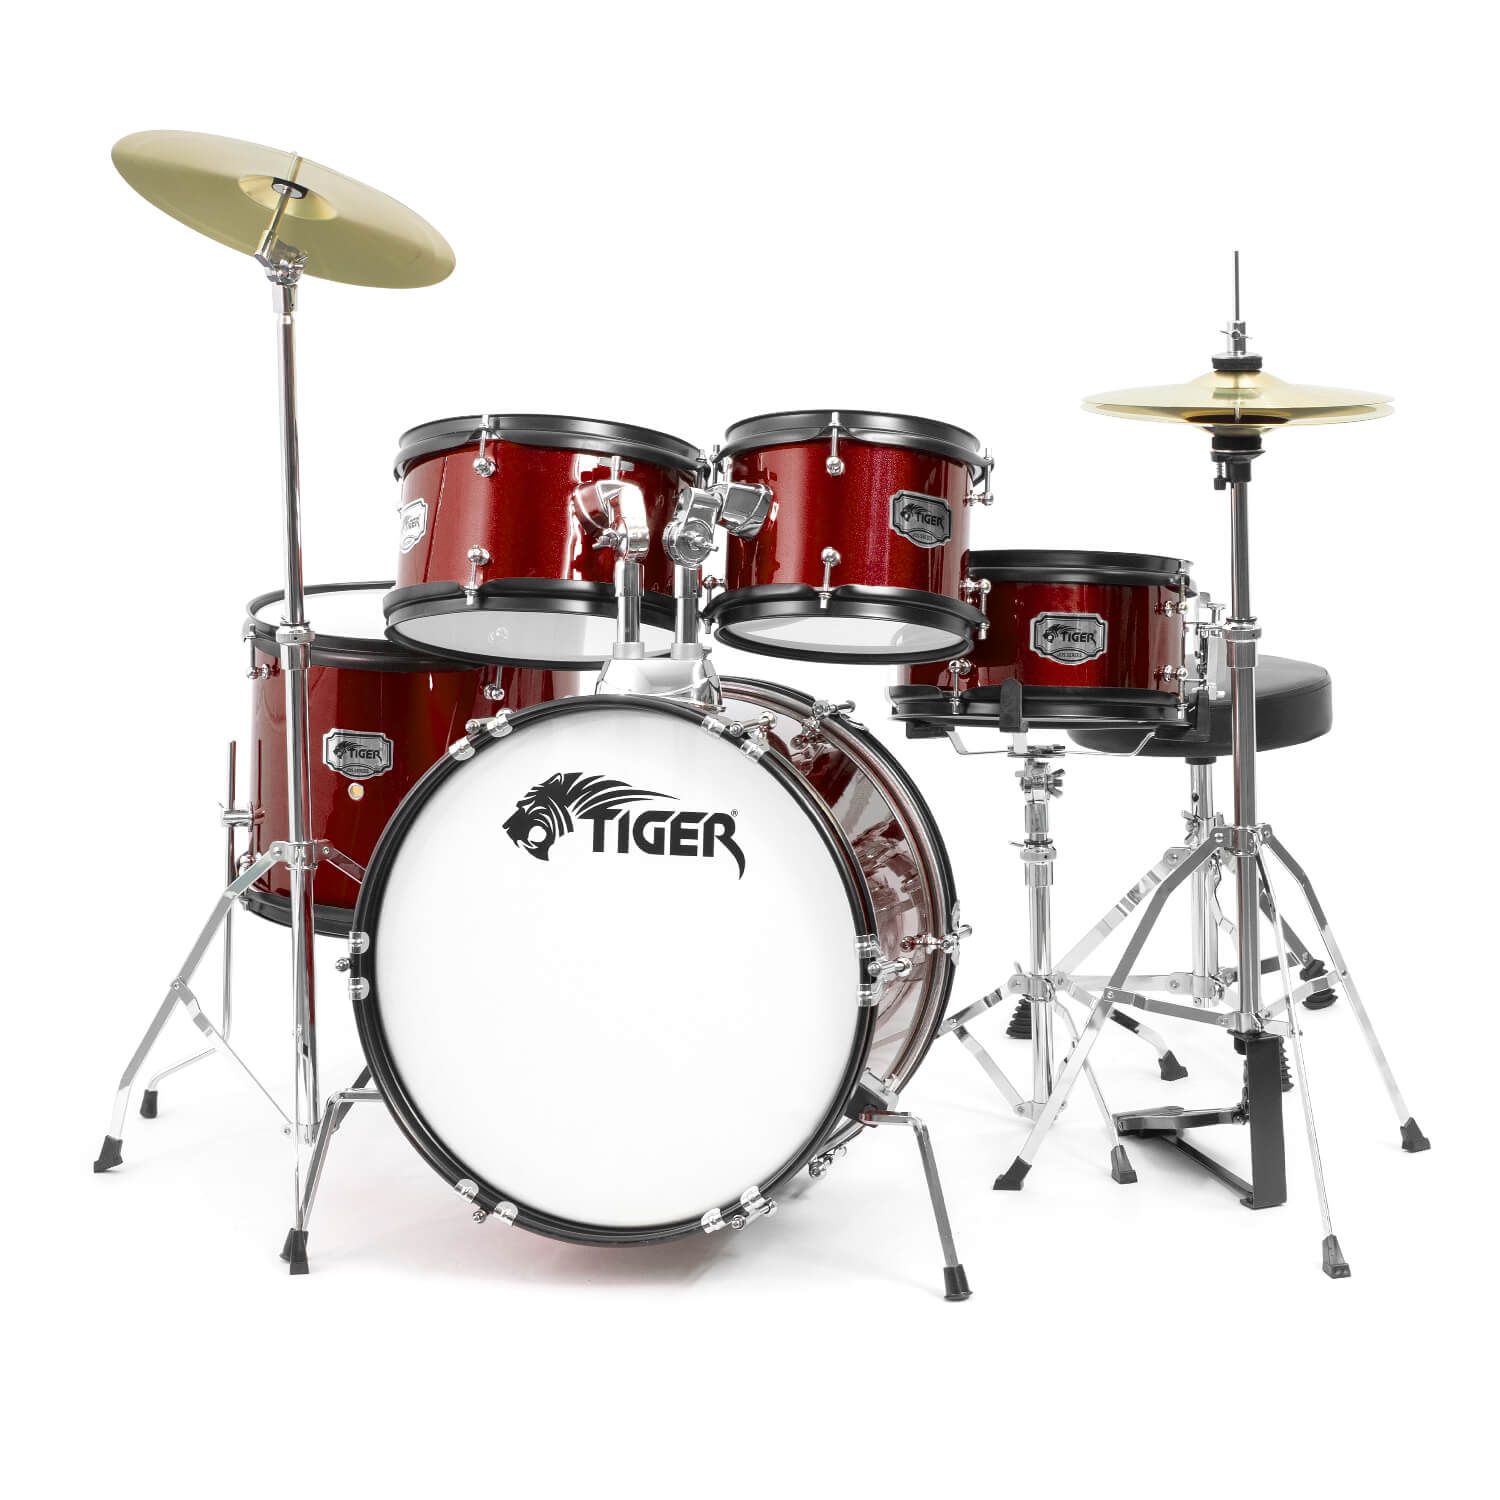 Tiger 5 Piece Junior Drum Kit - Red